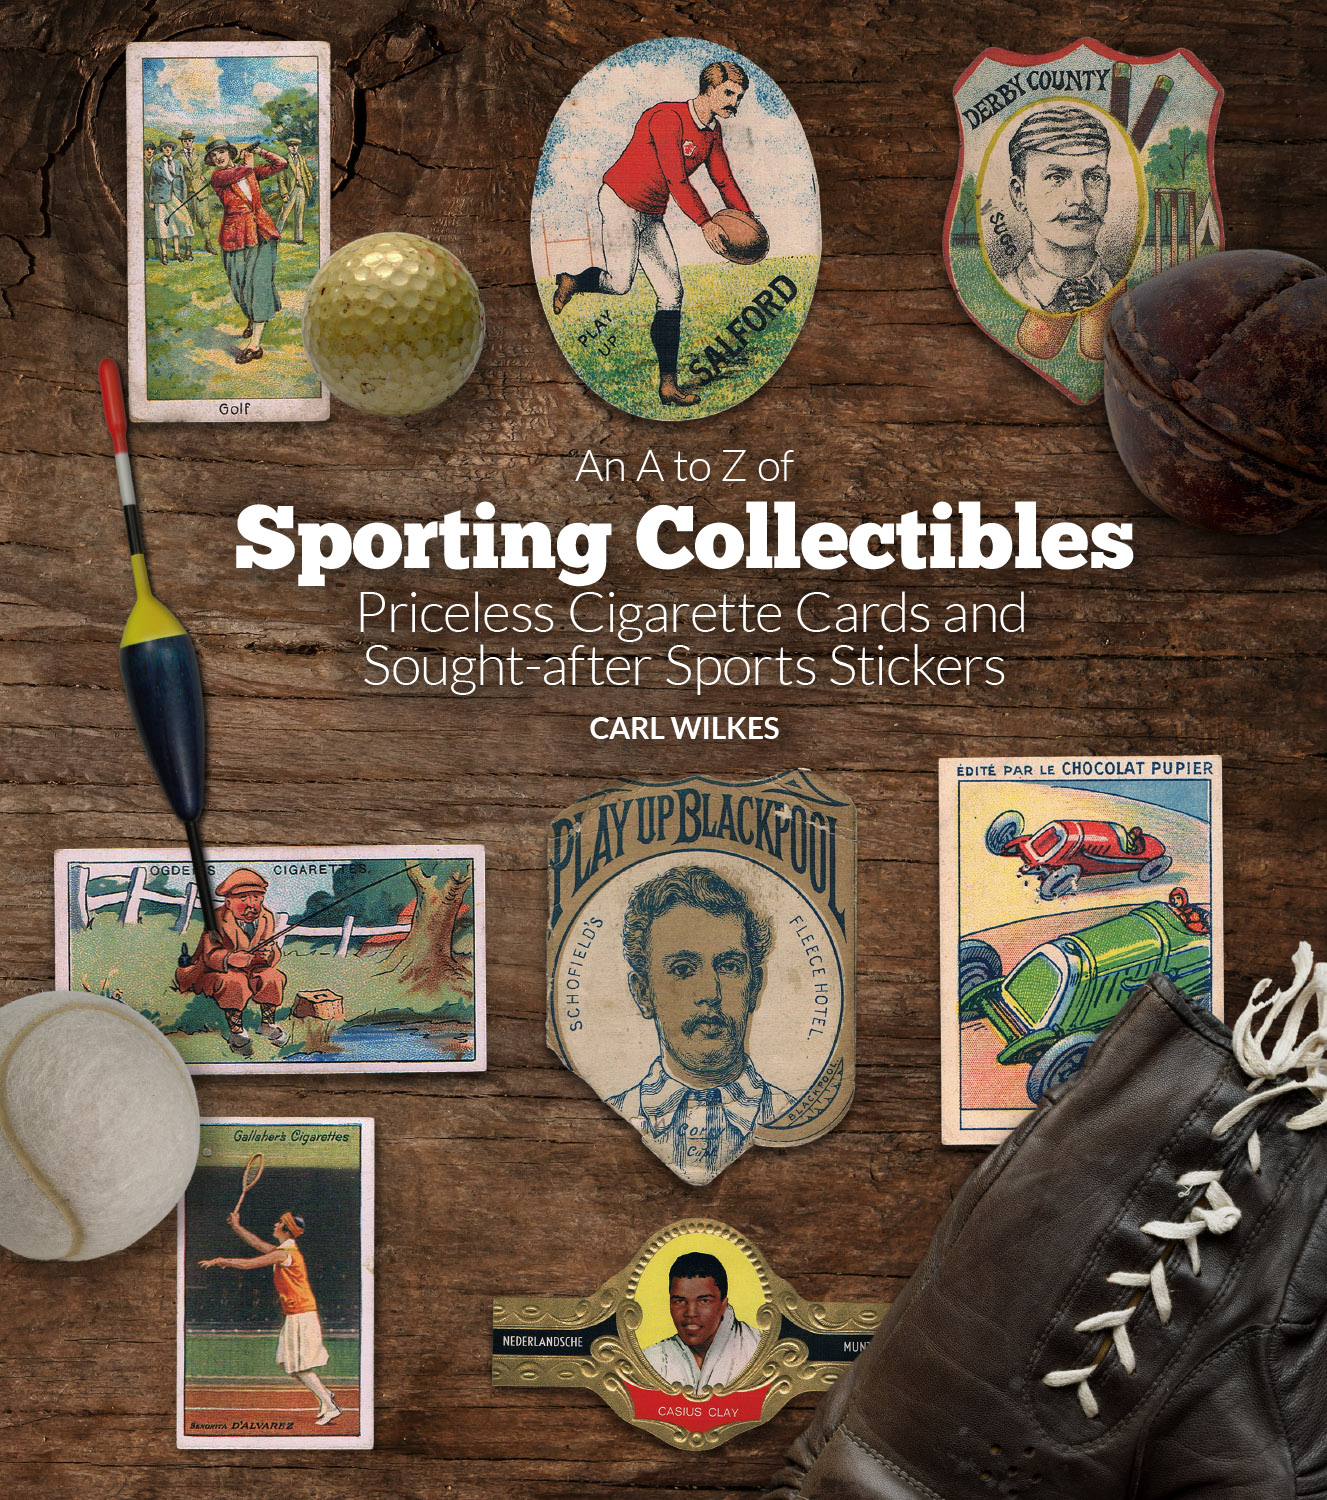 An A to Z of Sporting Collectibles